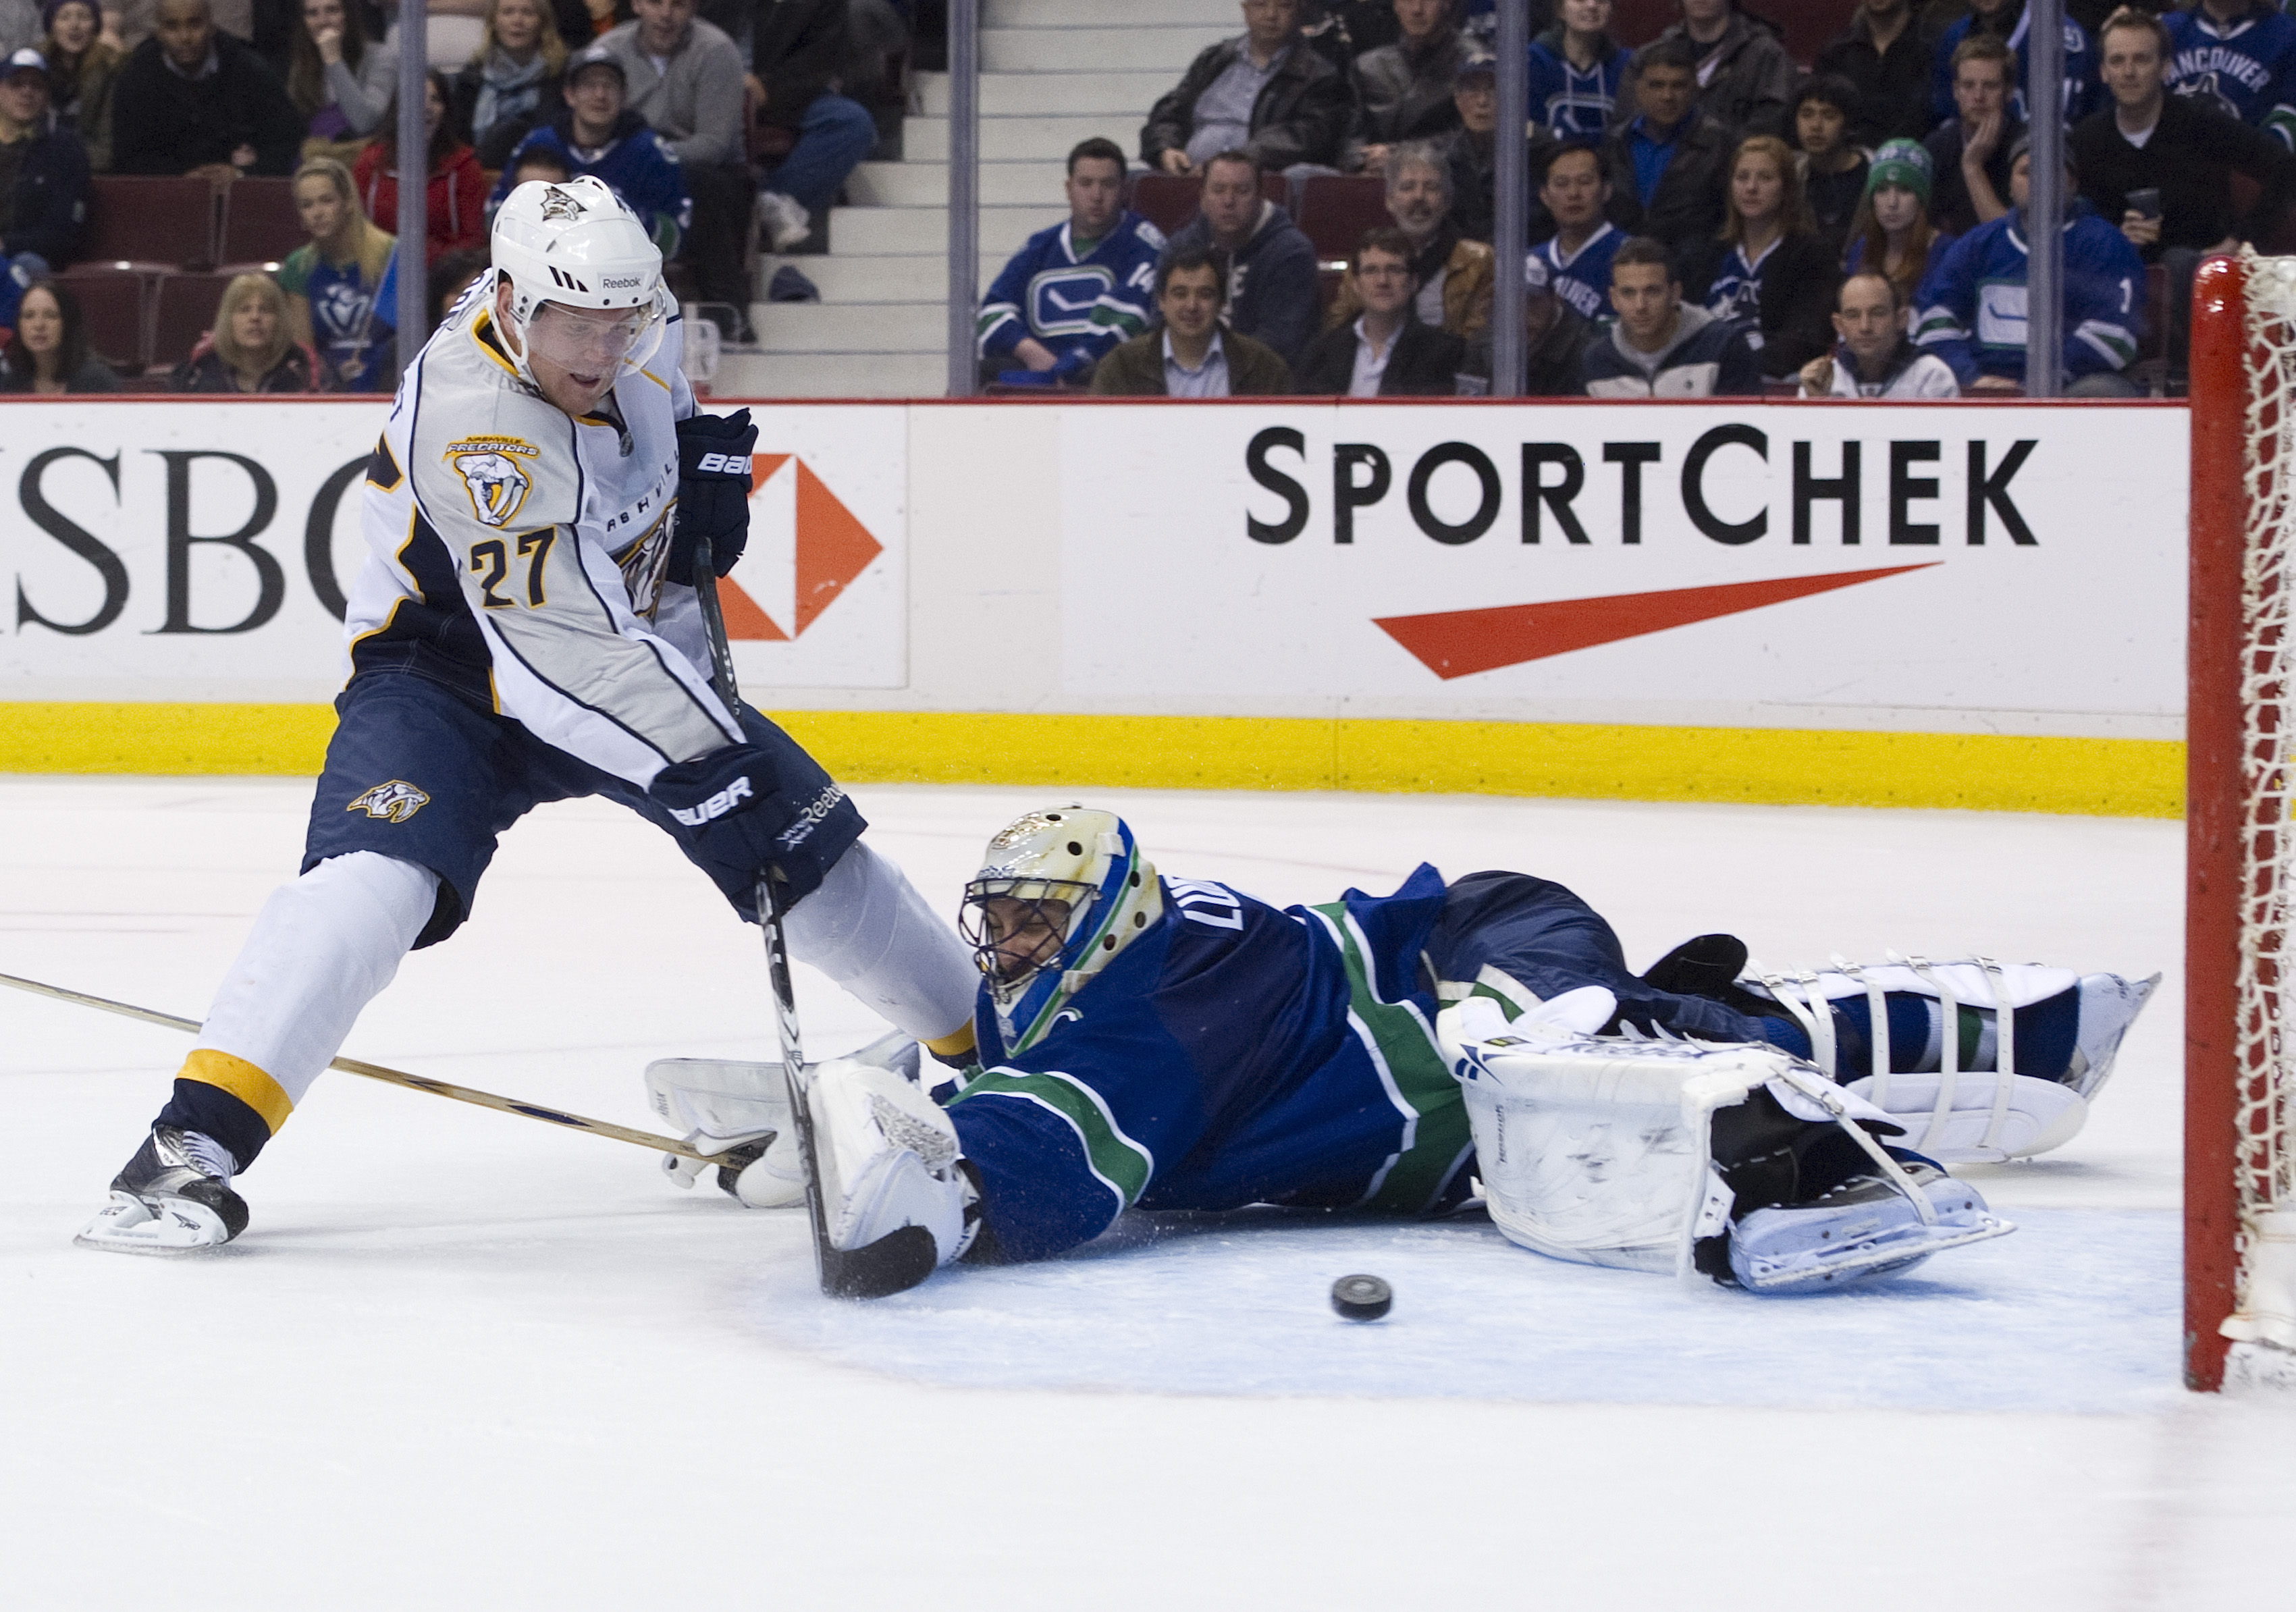 VANCOUVER, CANADA - MARCH 3: Patric Hornqvist #27 of the Nashville Predators slides the puck past goalie Roberto Luongo #1 of the Vancouver Canucks during the third period in NHL action on March 03, 2011 at Rogers Arena in Vancouver, British Columbia, Can